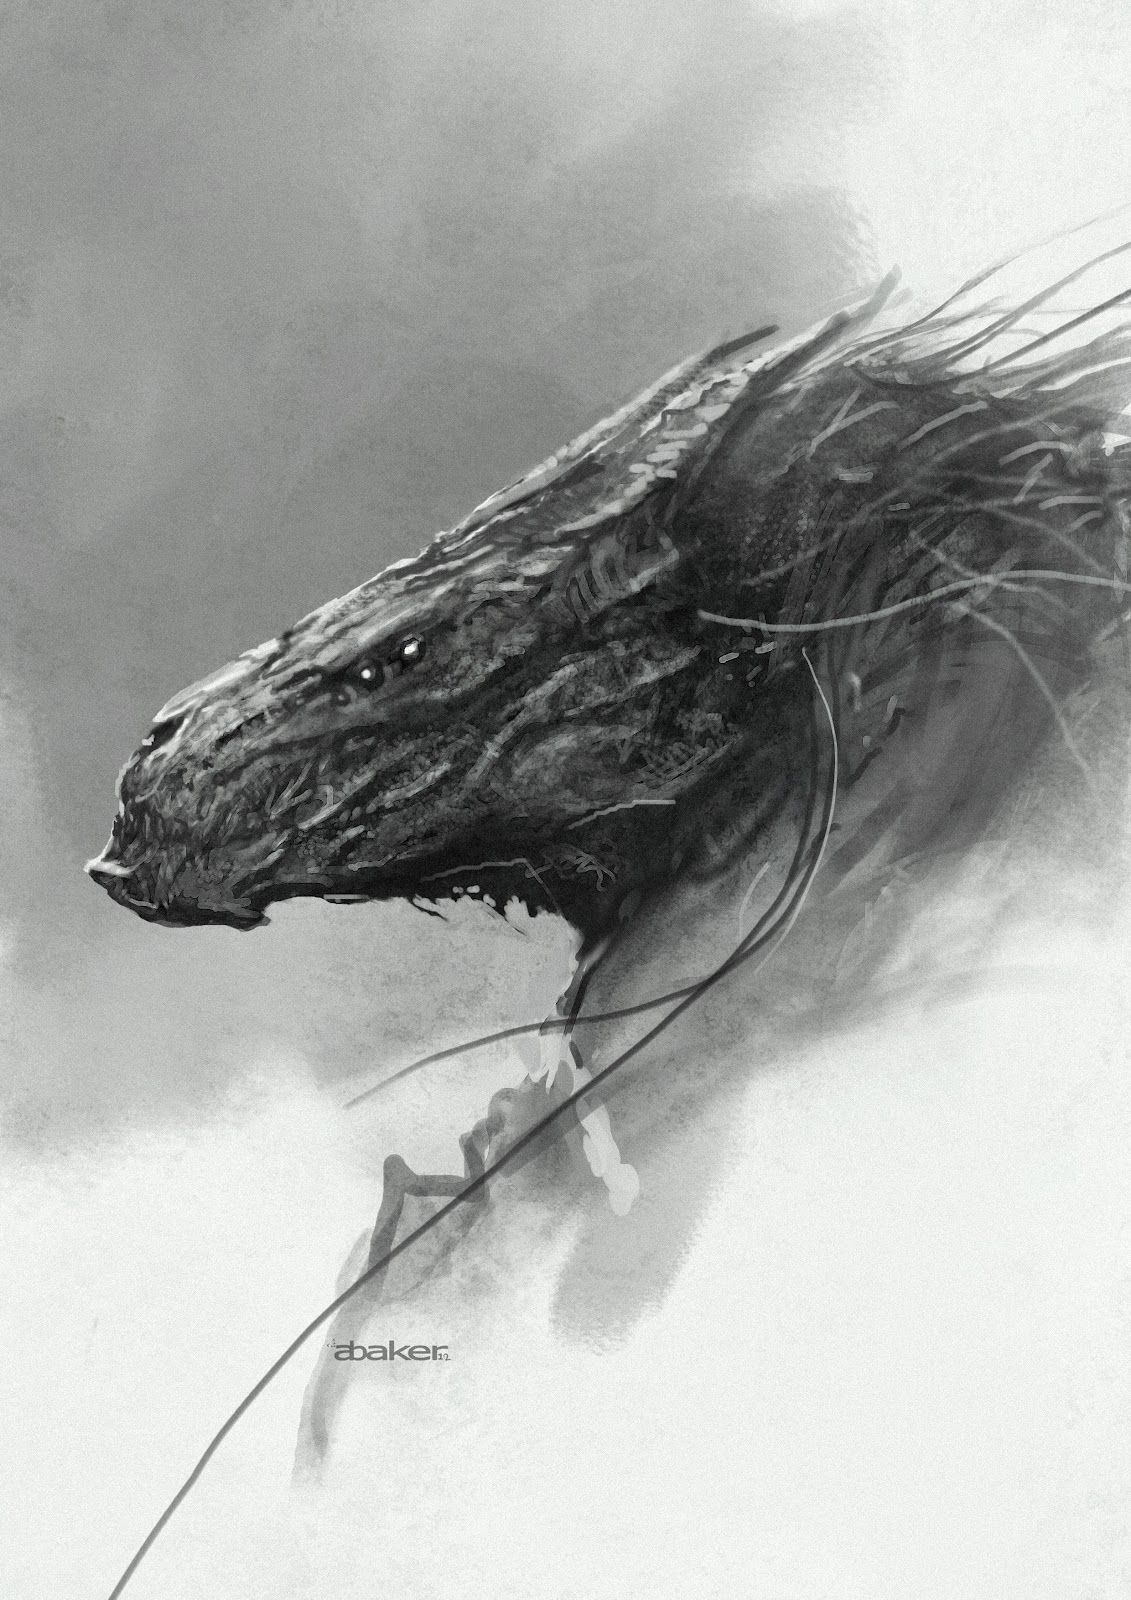 dragonSketch_abaker.jpg (1131×1600)